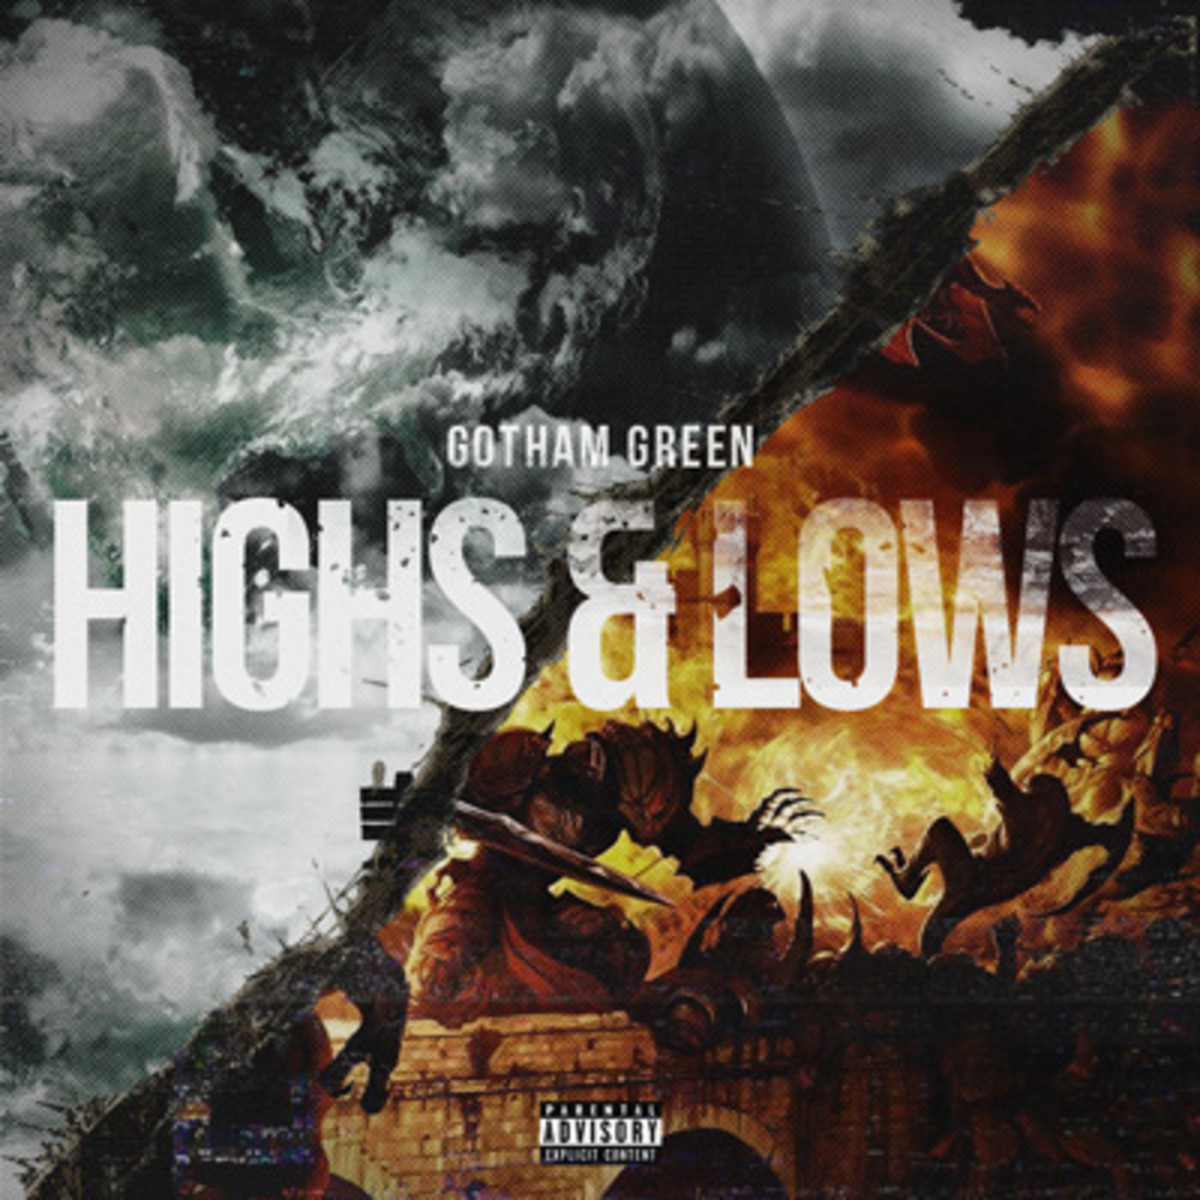 gothamgreen-highslows.jpg